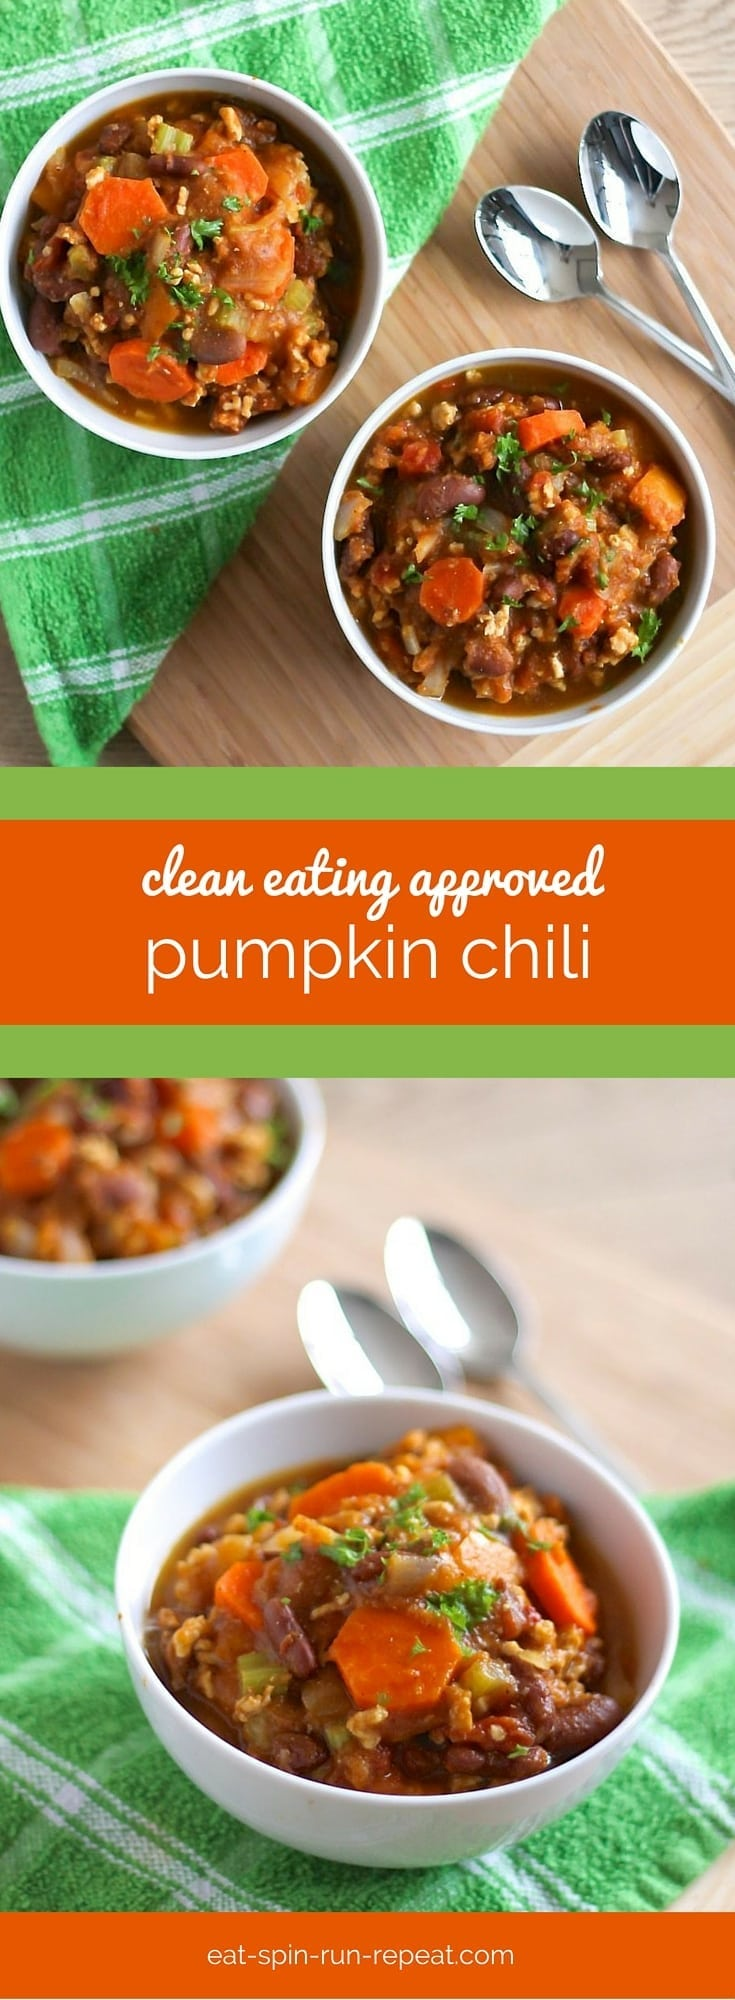 Clean Eating Pumpkin Chili - This fall-inspired chili is a delicious and super healthy lunch or dinner that can be made ahead in big batches. To make it vegan, swap out the ground turkey for grated tempeh or any type of bean. Recipe at eat-spin-run-repeat.com